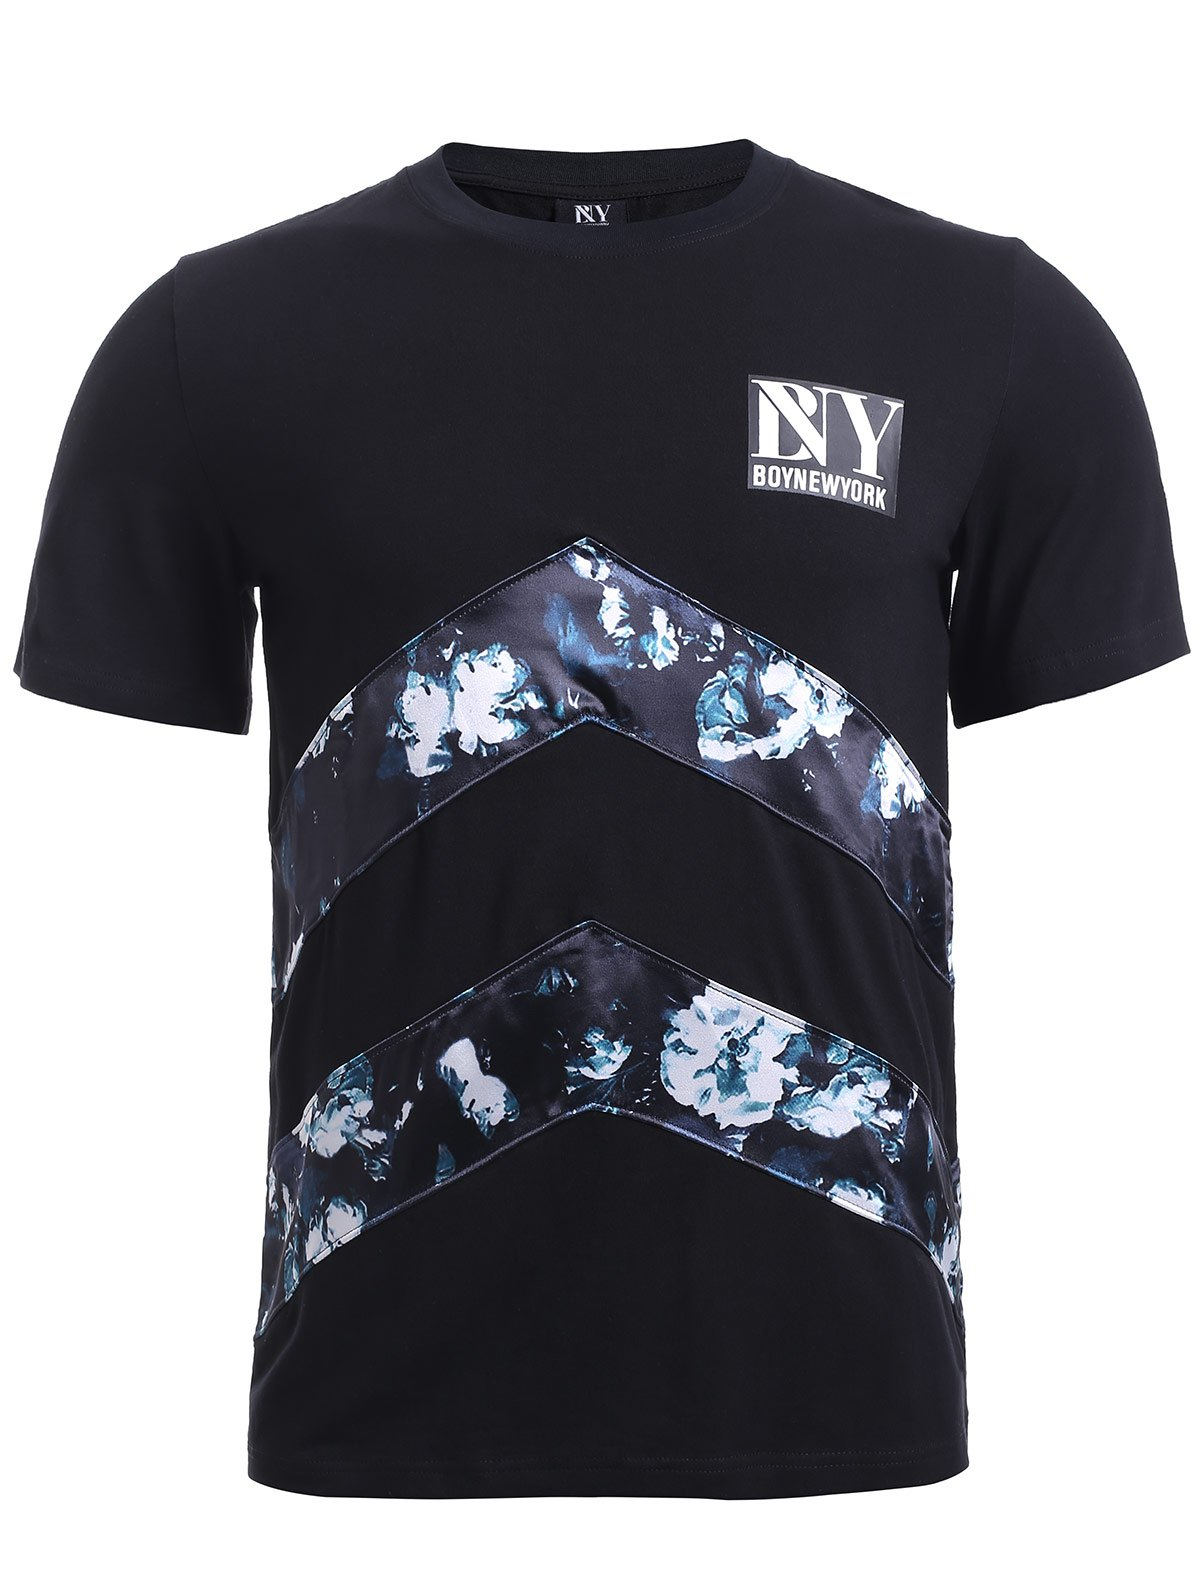 BoyNewYork Floral Applique Spliced T-Shirt - BLACK XL